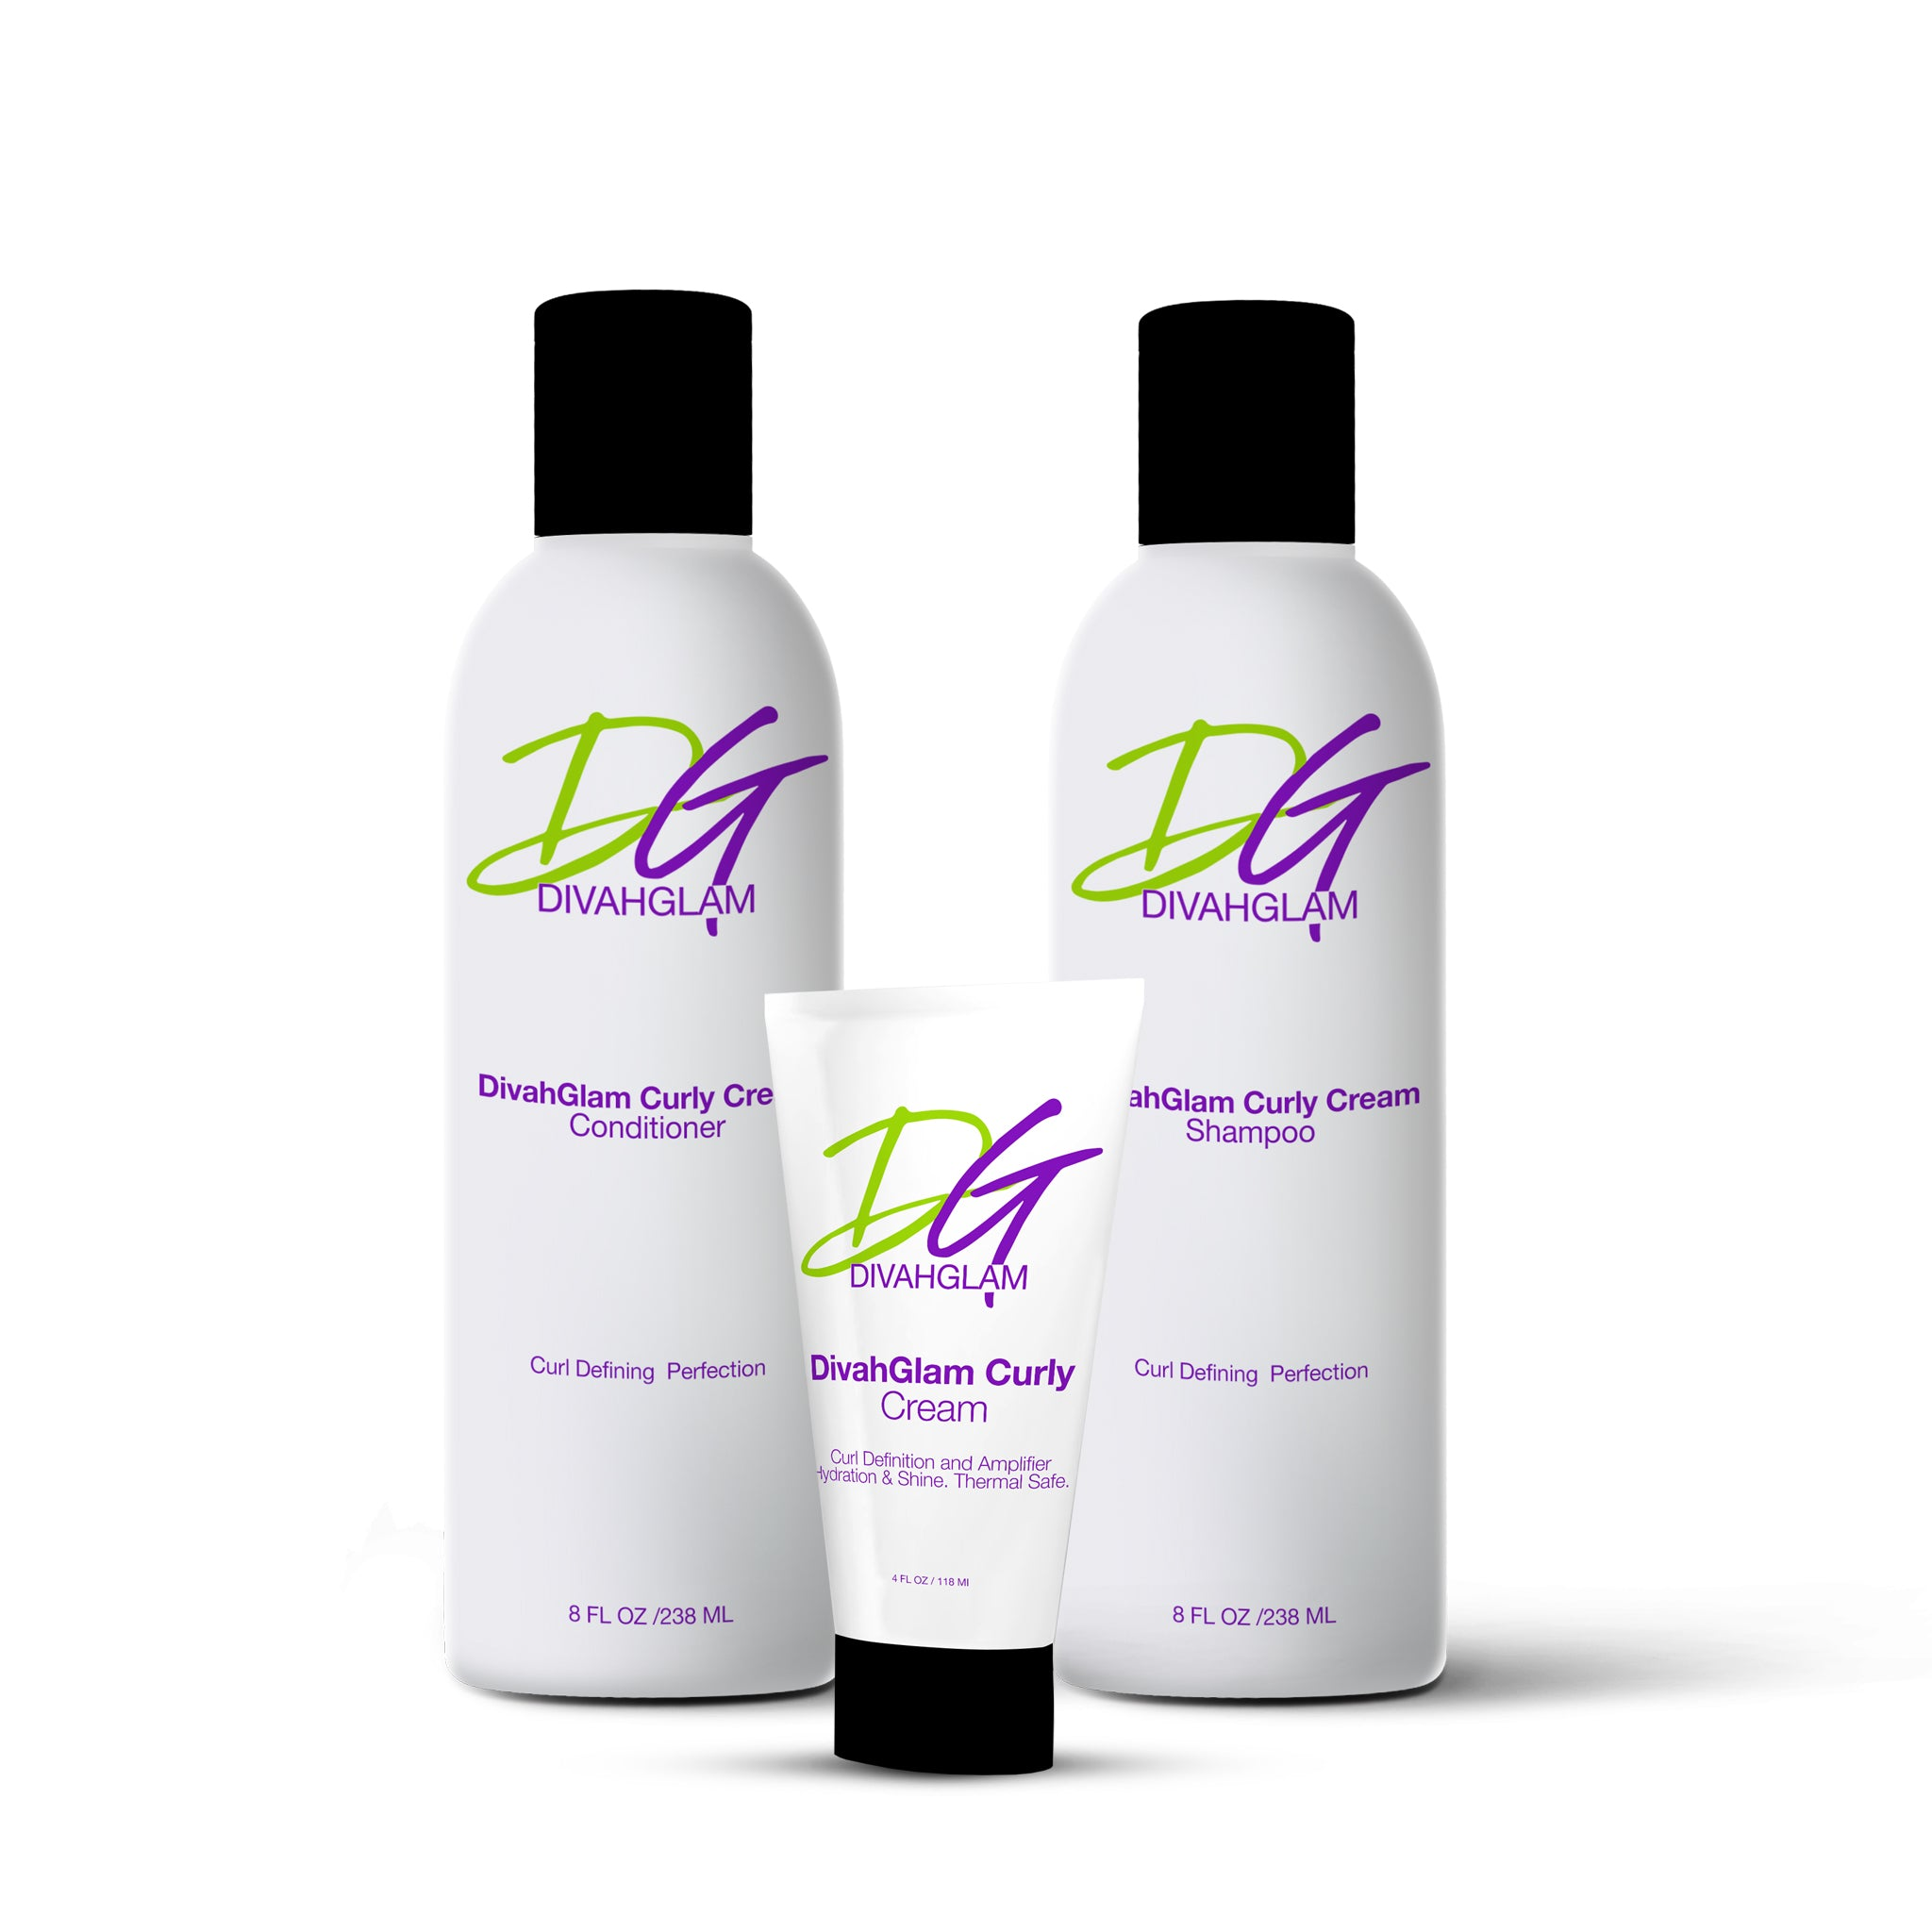 DIVAHGLAM CURLY CREAM PACKAGE